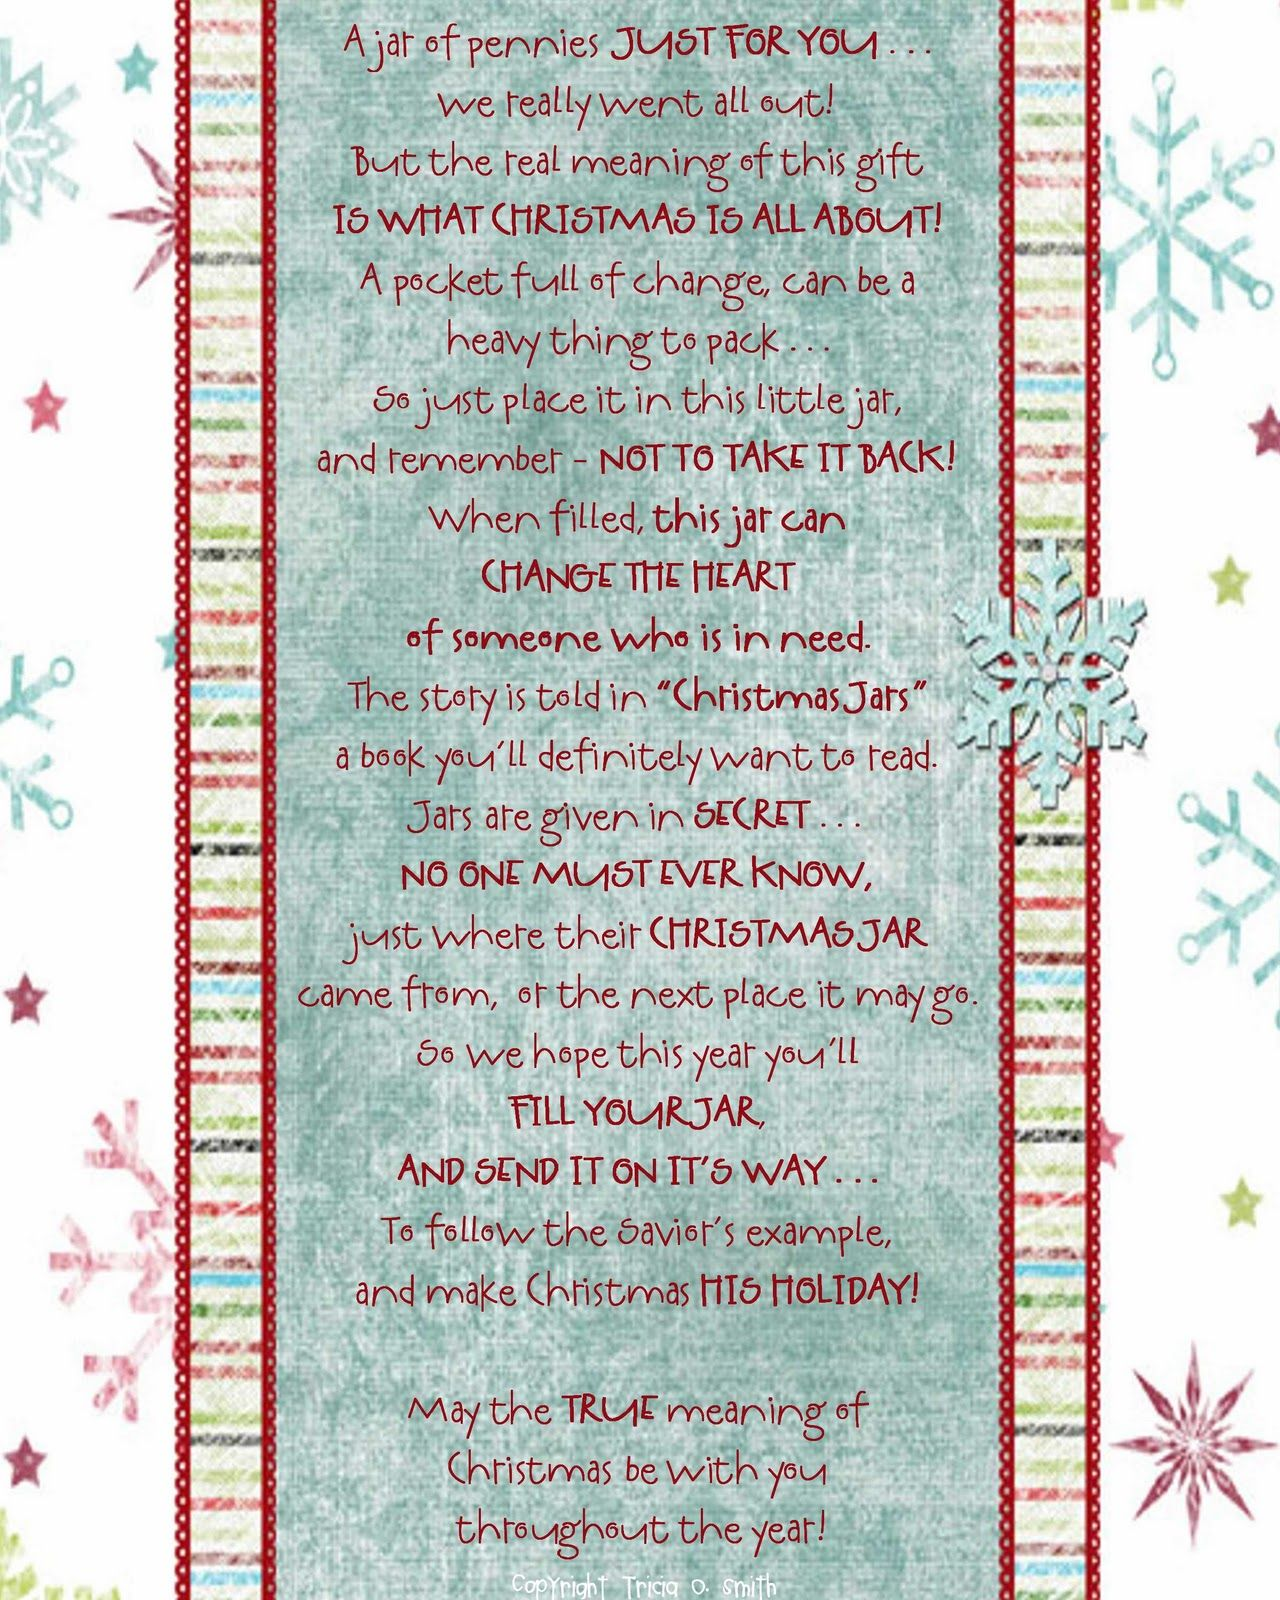 Copy Of Christmas Jars In Blue Jpg 1 280 1 600 Pixels Christmas Poems Christmas Jars Christmas Money